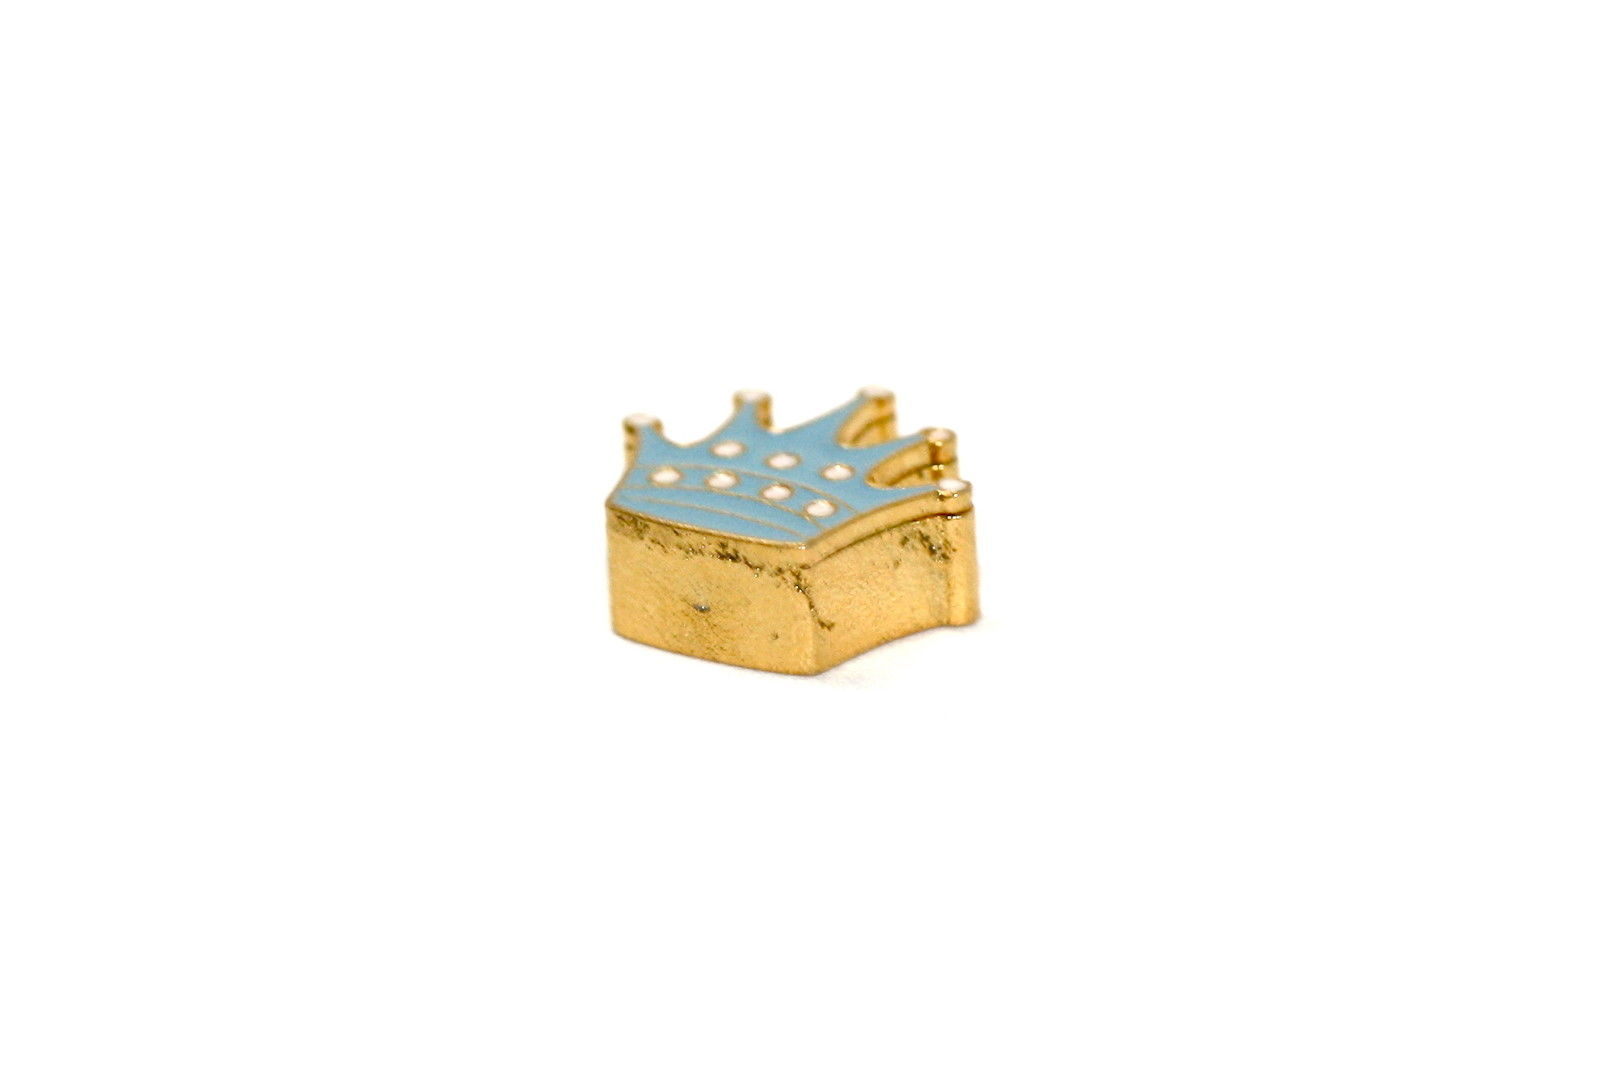 BRACCIALE DISNEY PRINCESS CROWN GOLD STAINLESS STEEL GOLD PLATED CHARM